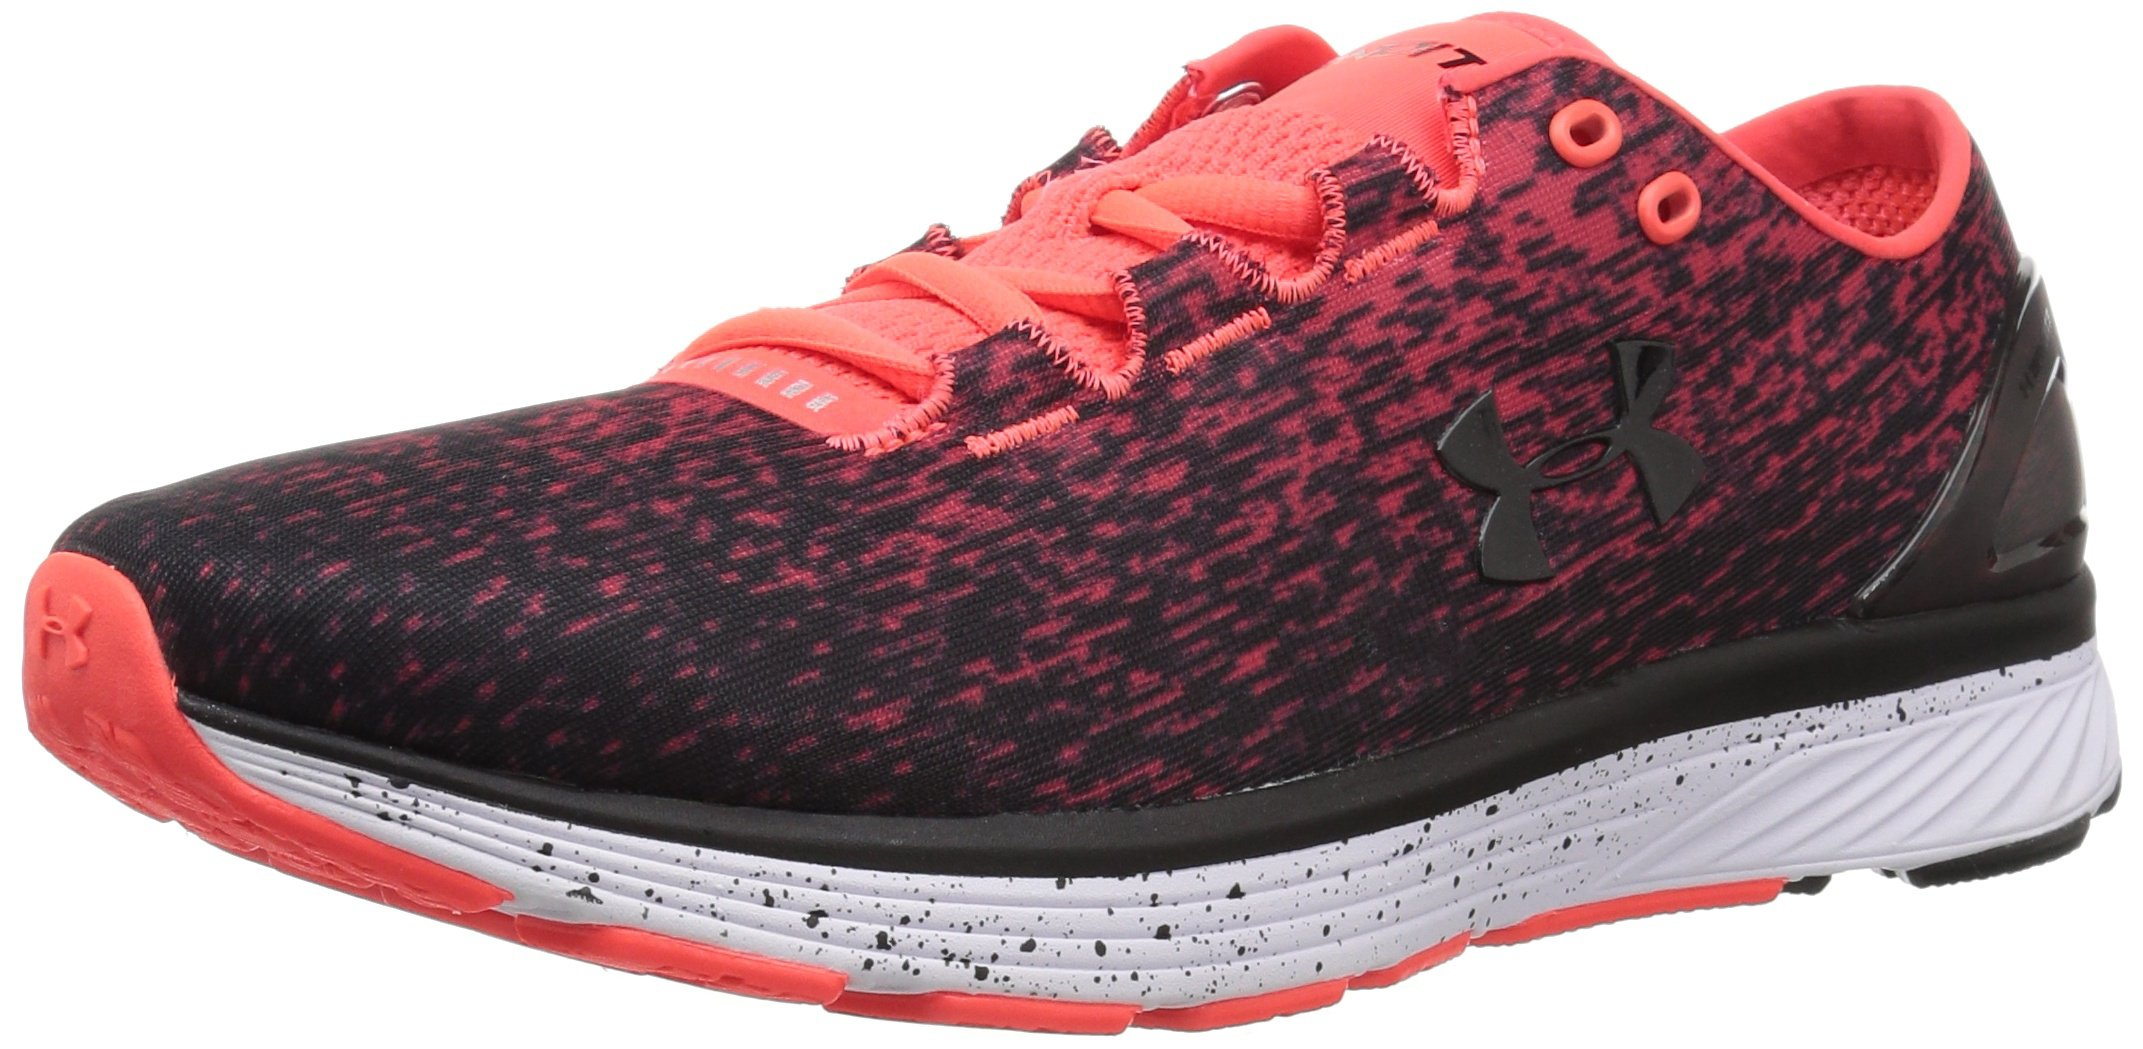 bbb300346b50 Galleon - Under Armour Men s Charged Bandit 3 Ombre Running Shoe ...